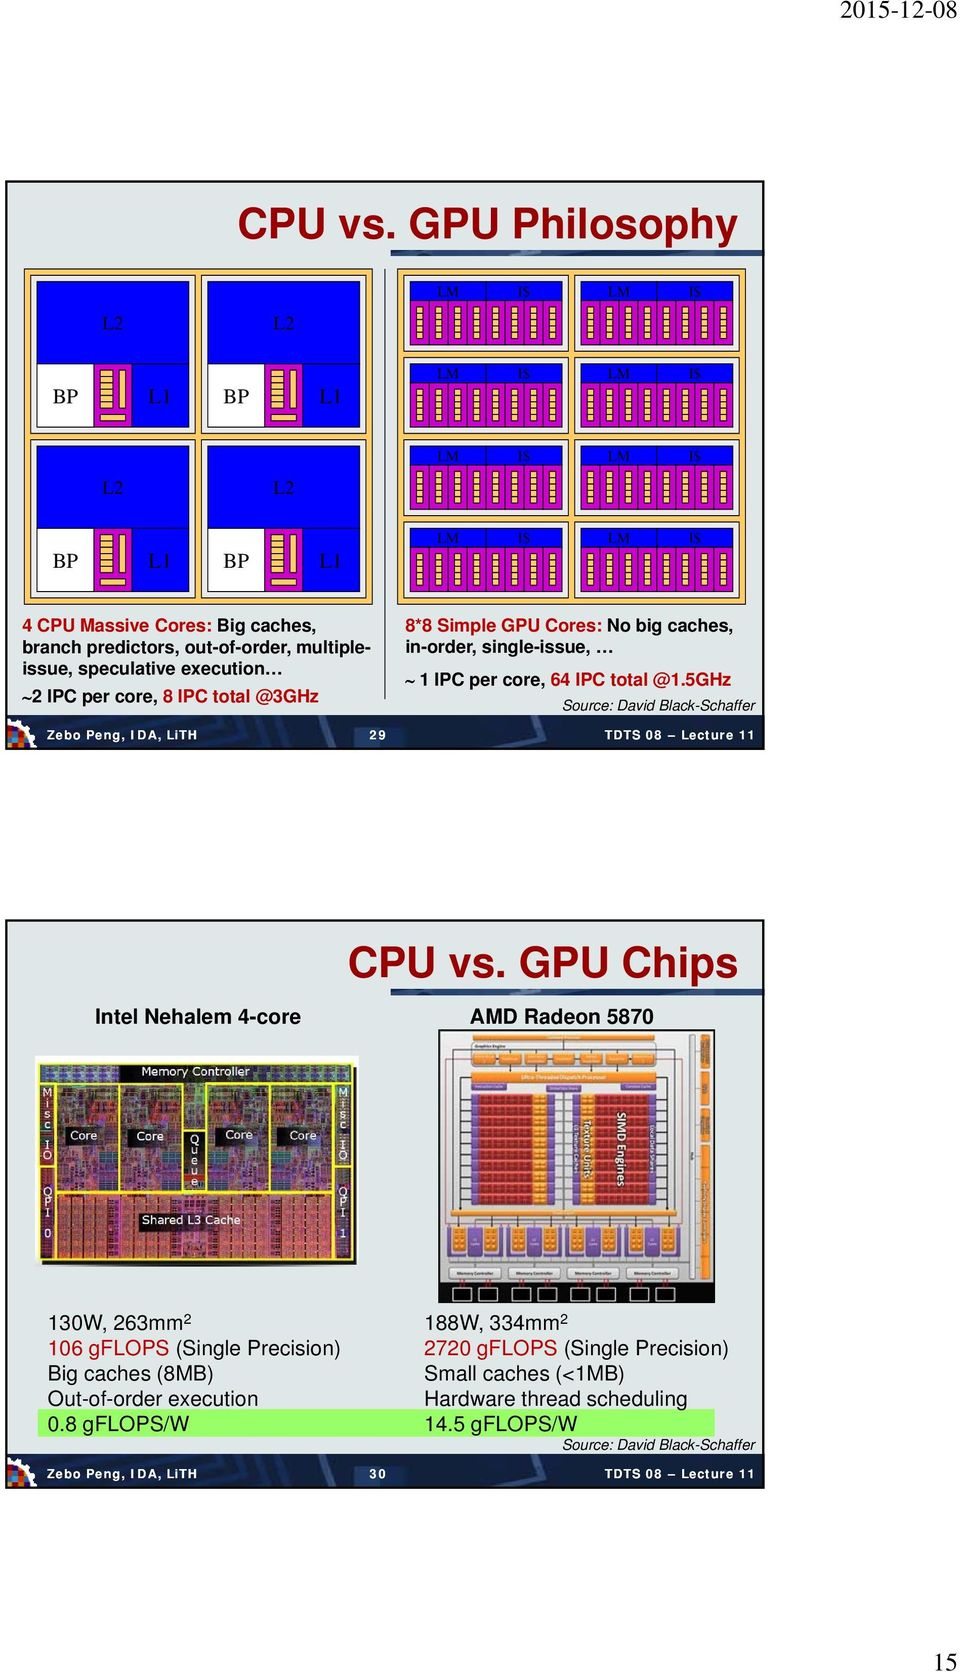 multipleissue, speculative execution 2 IPC per core, 8 IPC total @3GHz 8*8 Simple GPU Cores: No big caches, in-order, single-issue, 1 IPC per core, 64 IPC total @1.